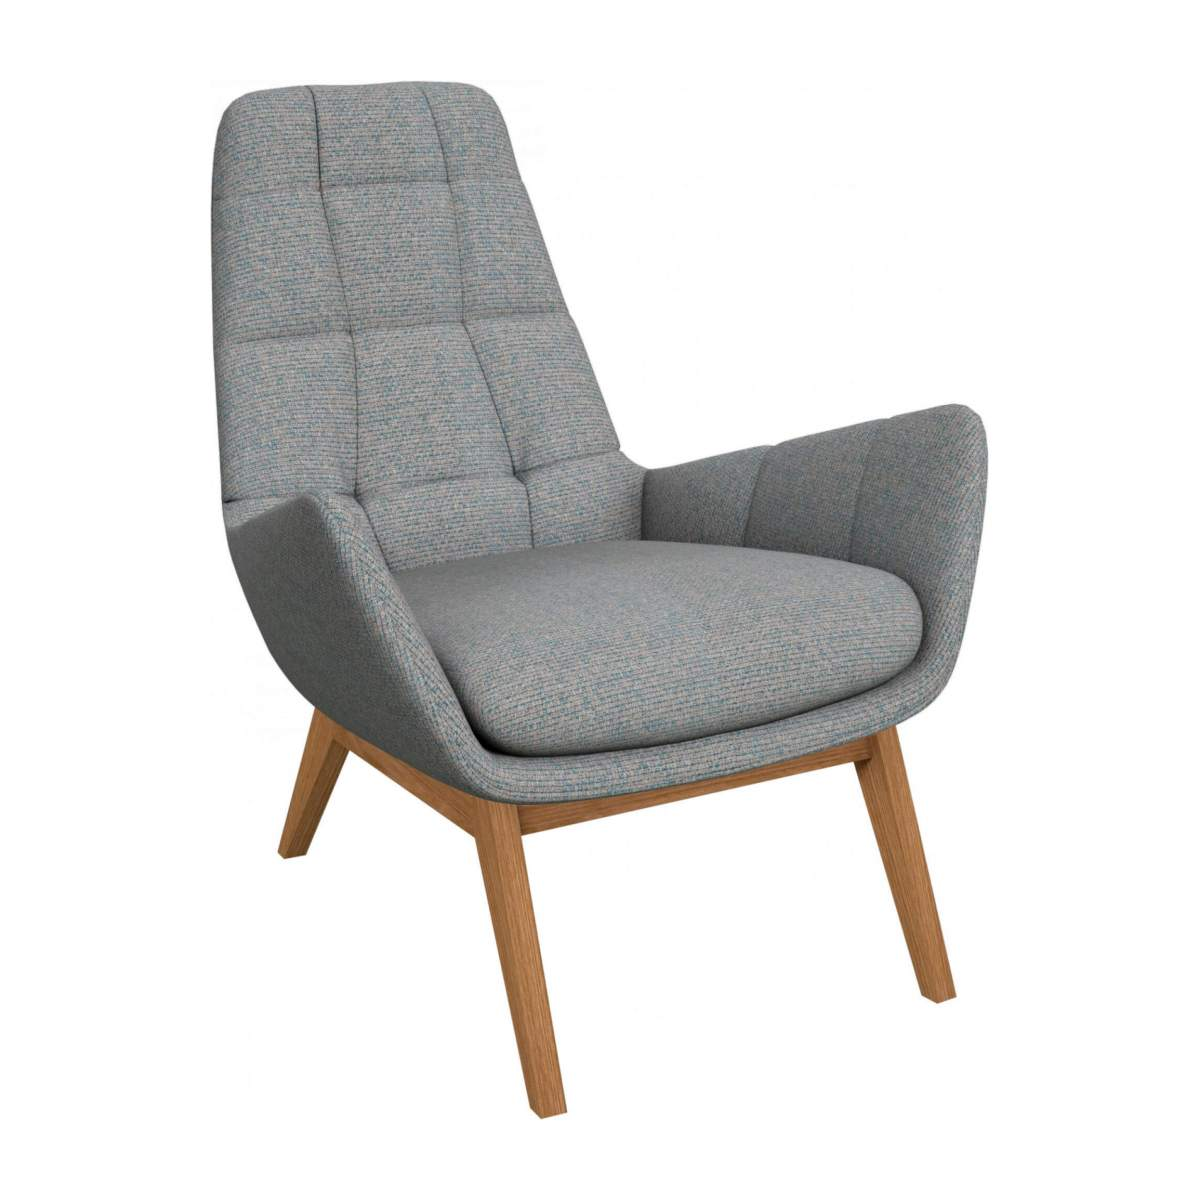 Armchair in Lecce fabric, blue reef with oak legs n°2